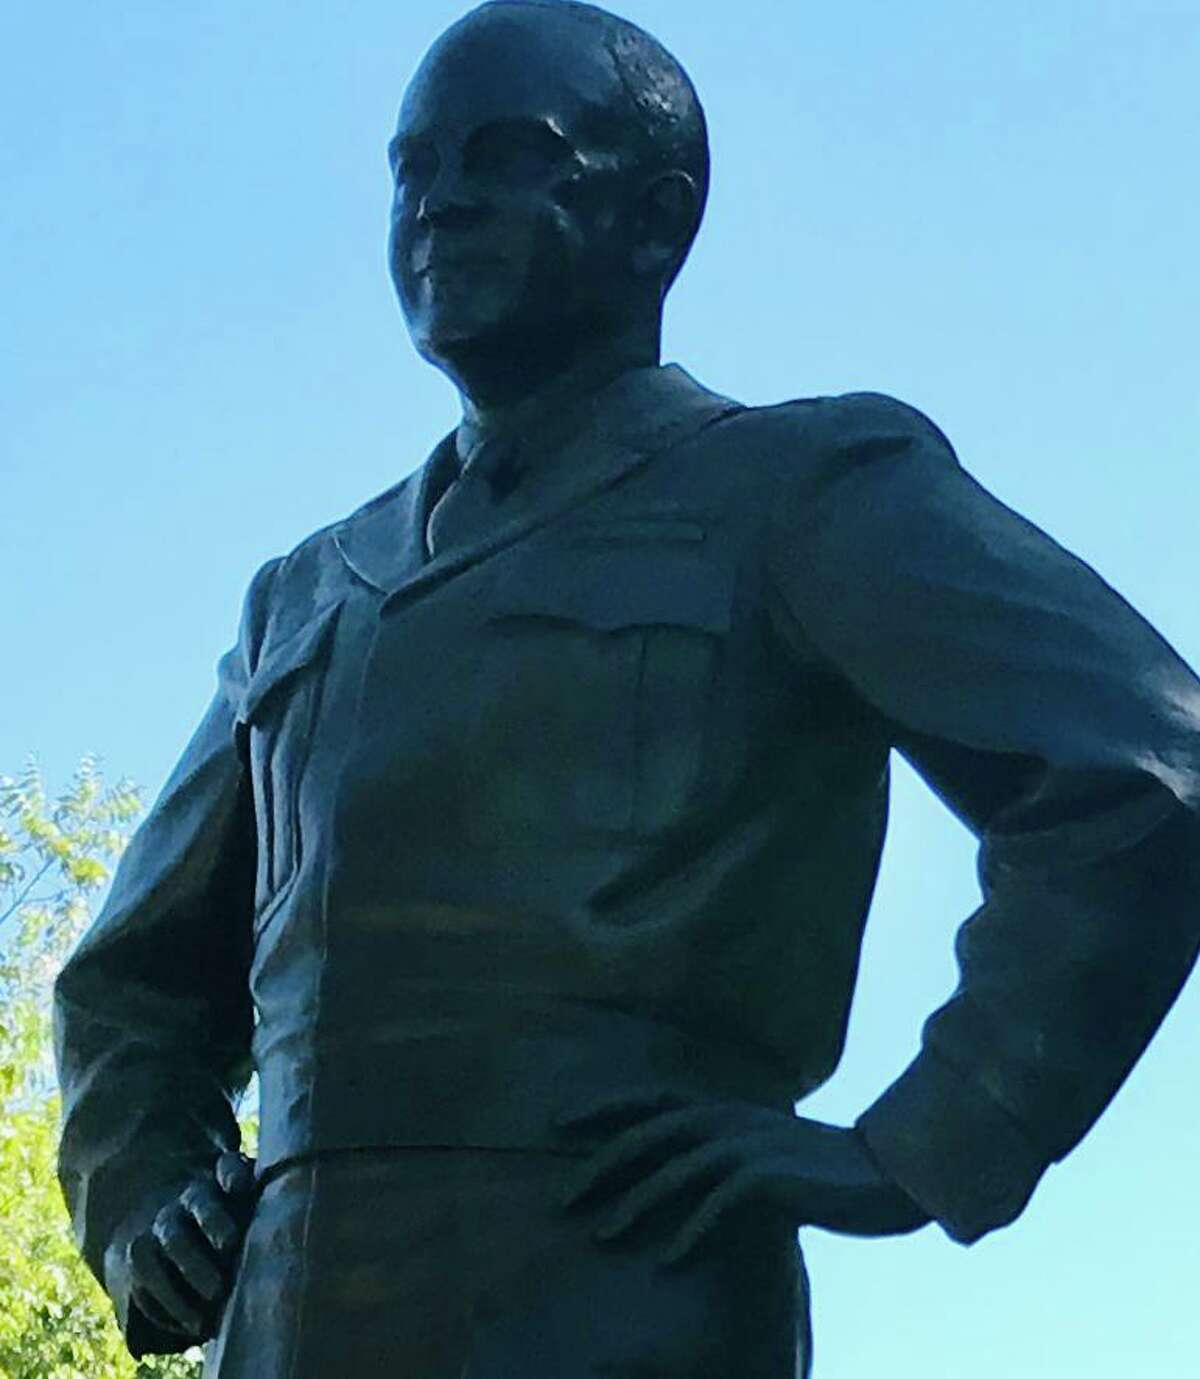 The Eisenhower sculpture on the grounds of his birthplace is by Robert Dean, a West Point graduate who marched in President Eisenhower's 1953 inauguration parade.